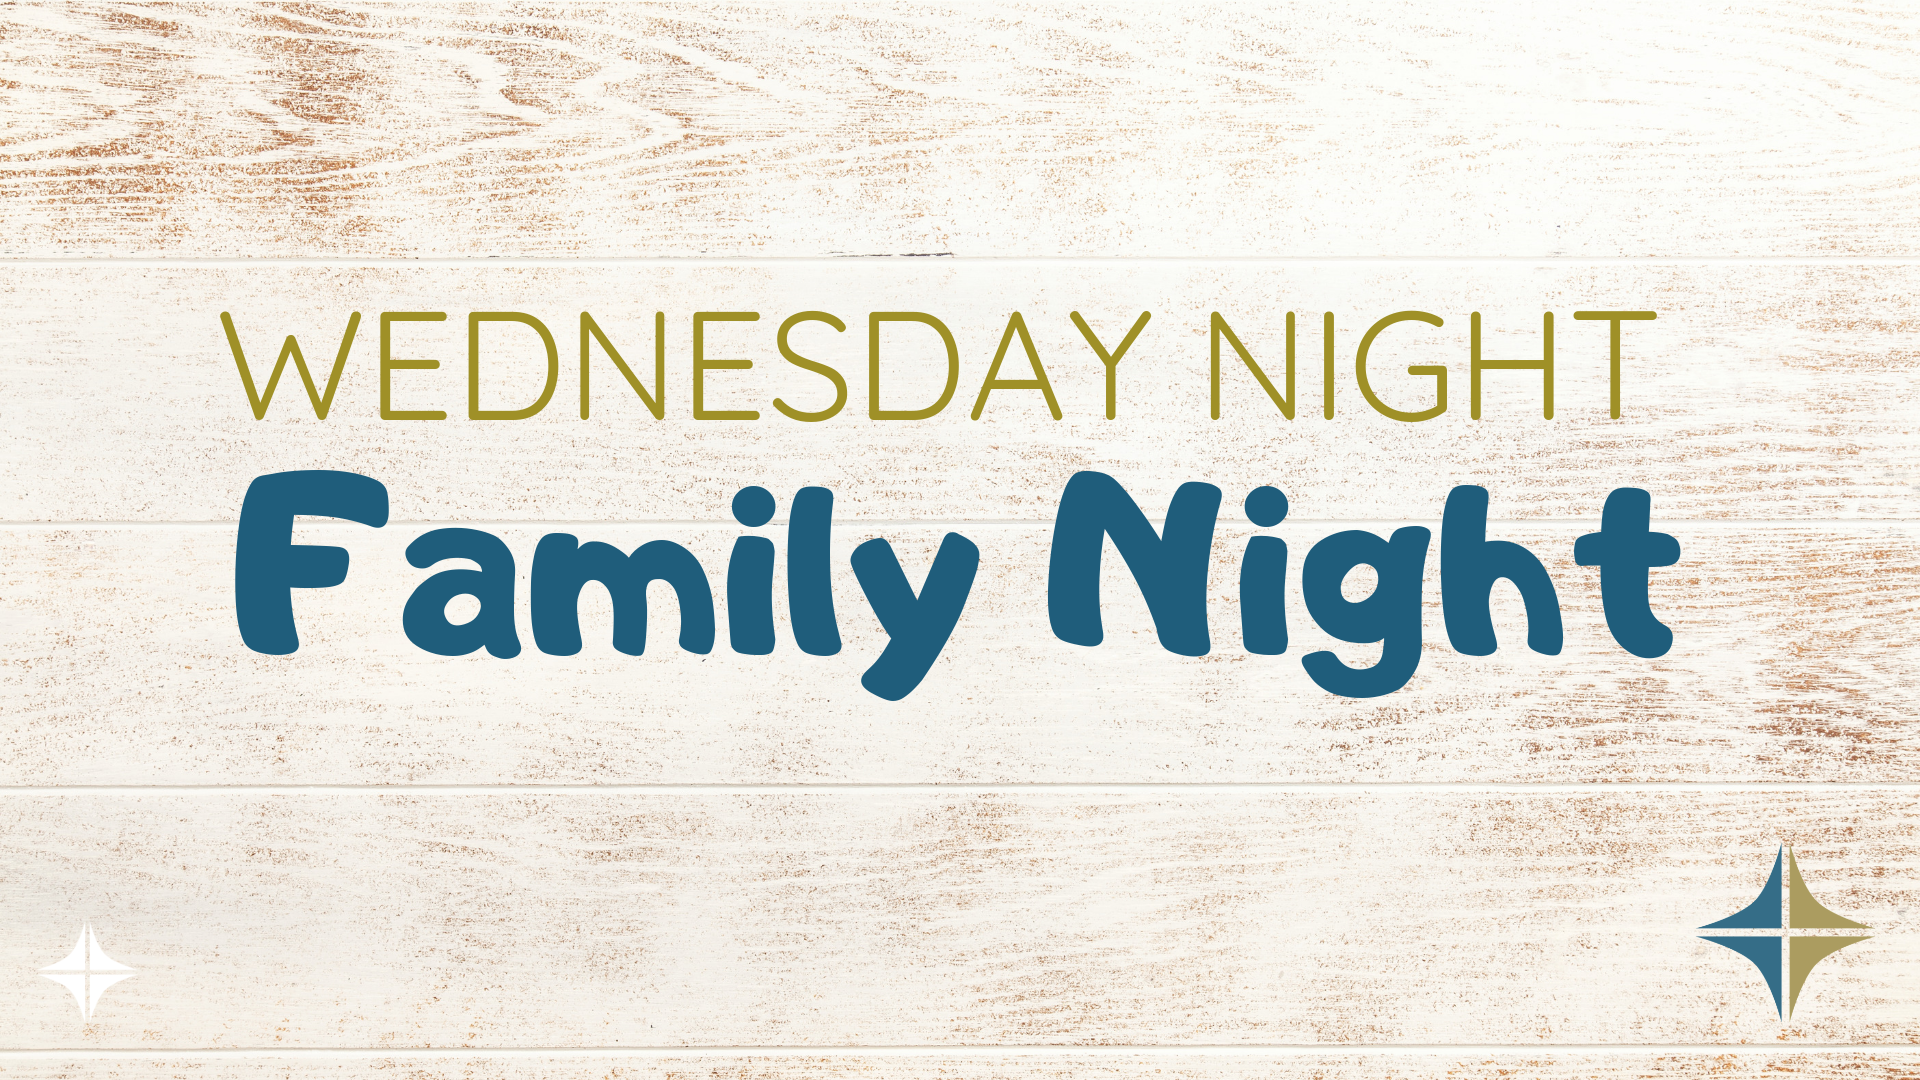 Wednesday Night Family Night